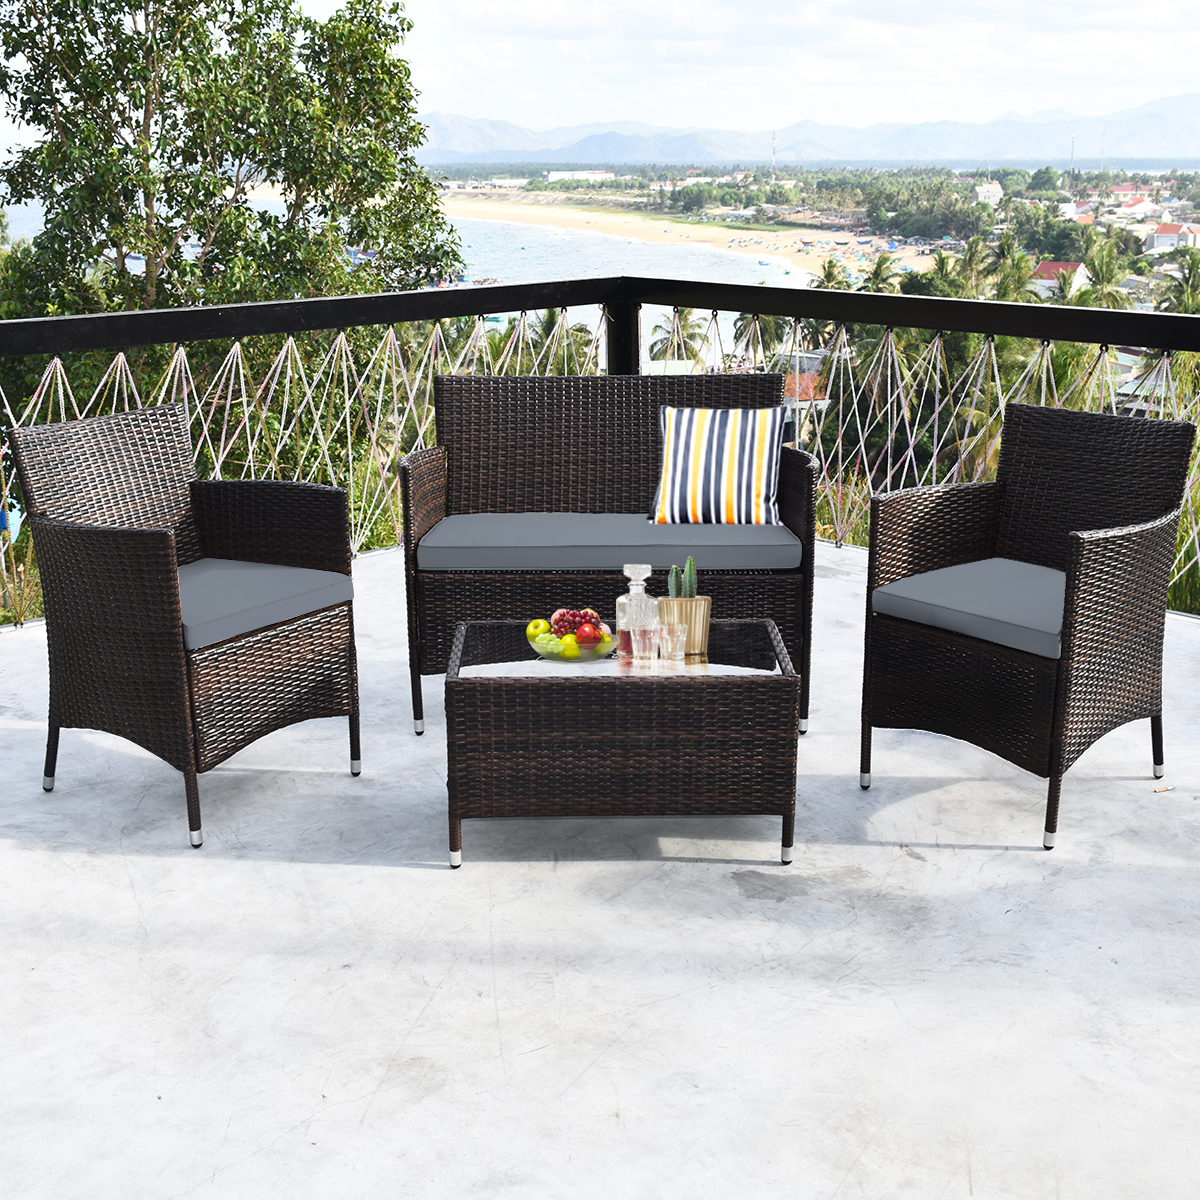 ikayaa Garden Sofa Set Padded Chairs Garden Furniture Patio Table Fashion Chairs Set of Conversation Steel Frame Pack Of 4